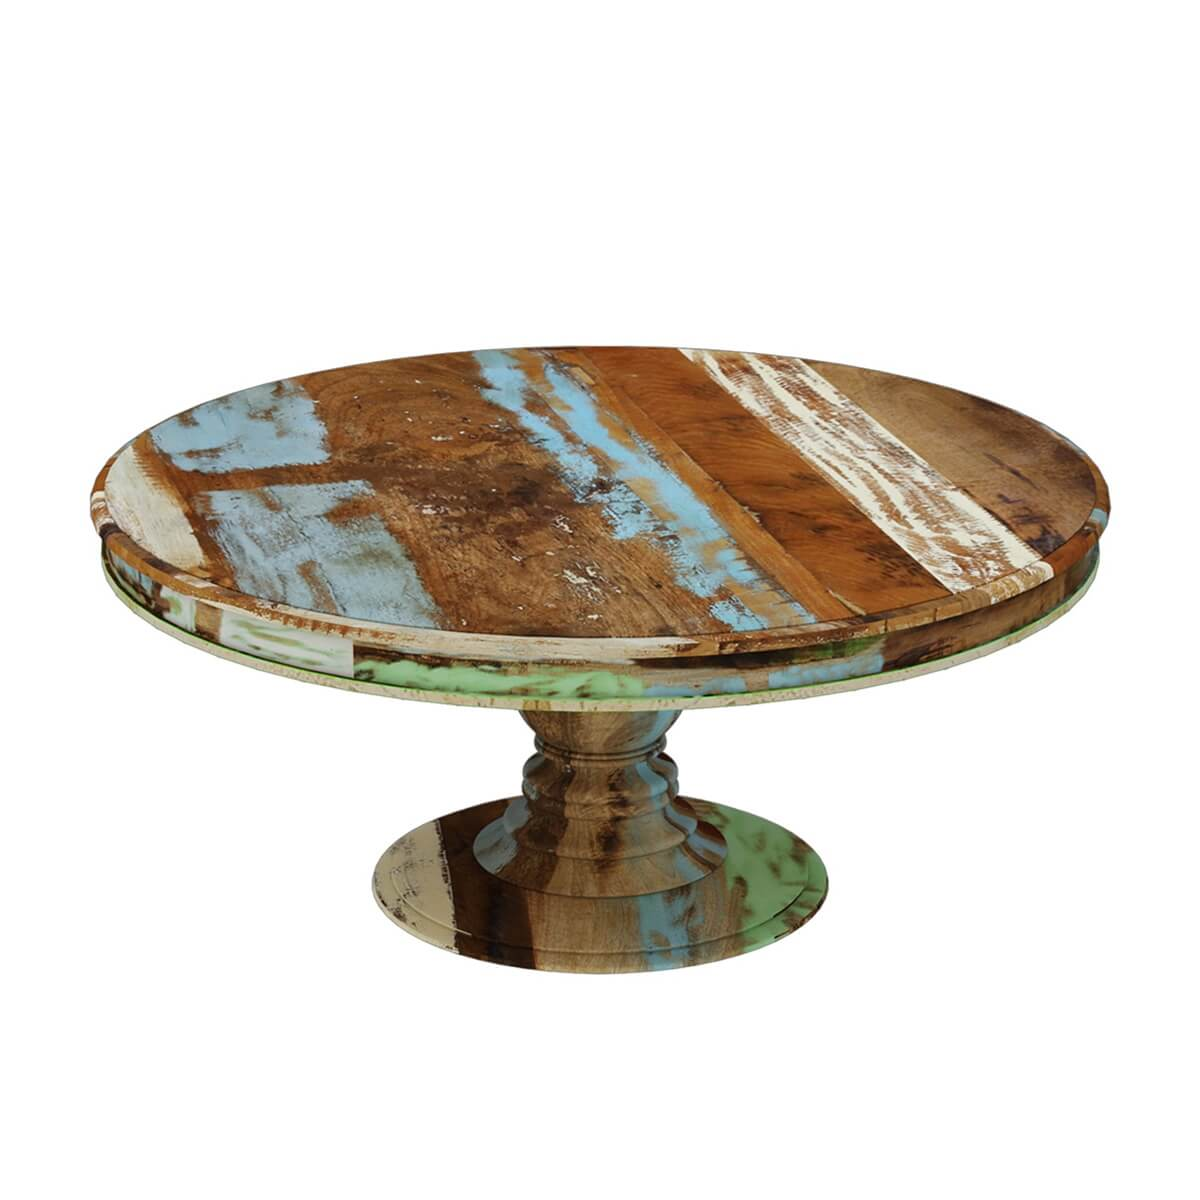 Wilmington Rustic Reclaimed Wood Round Pedestal Dining Table